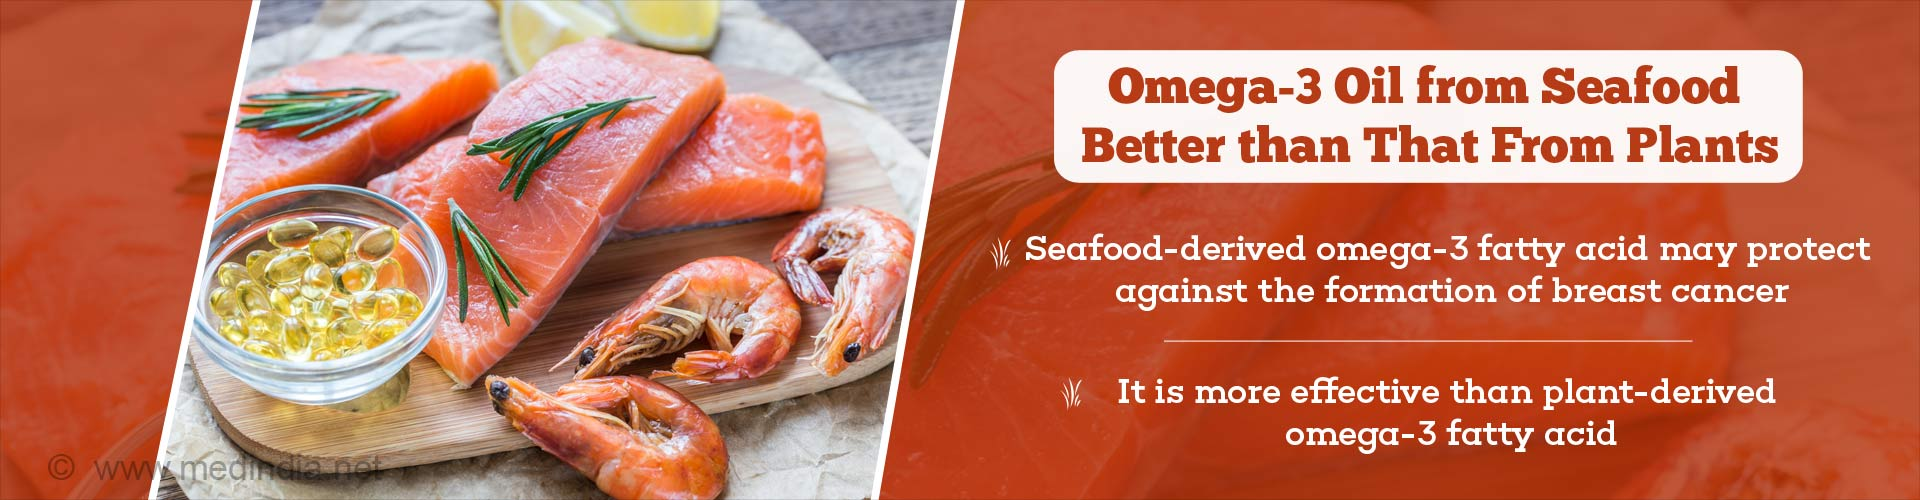 Omega-3 Oil from Seafood Better Than That From Plants